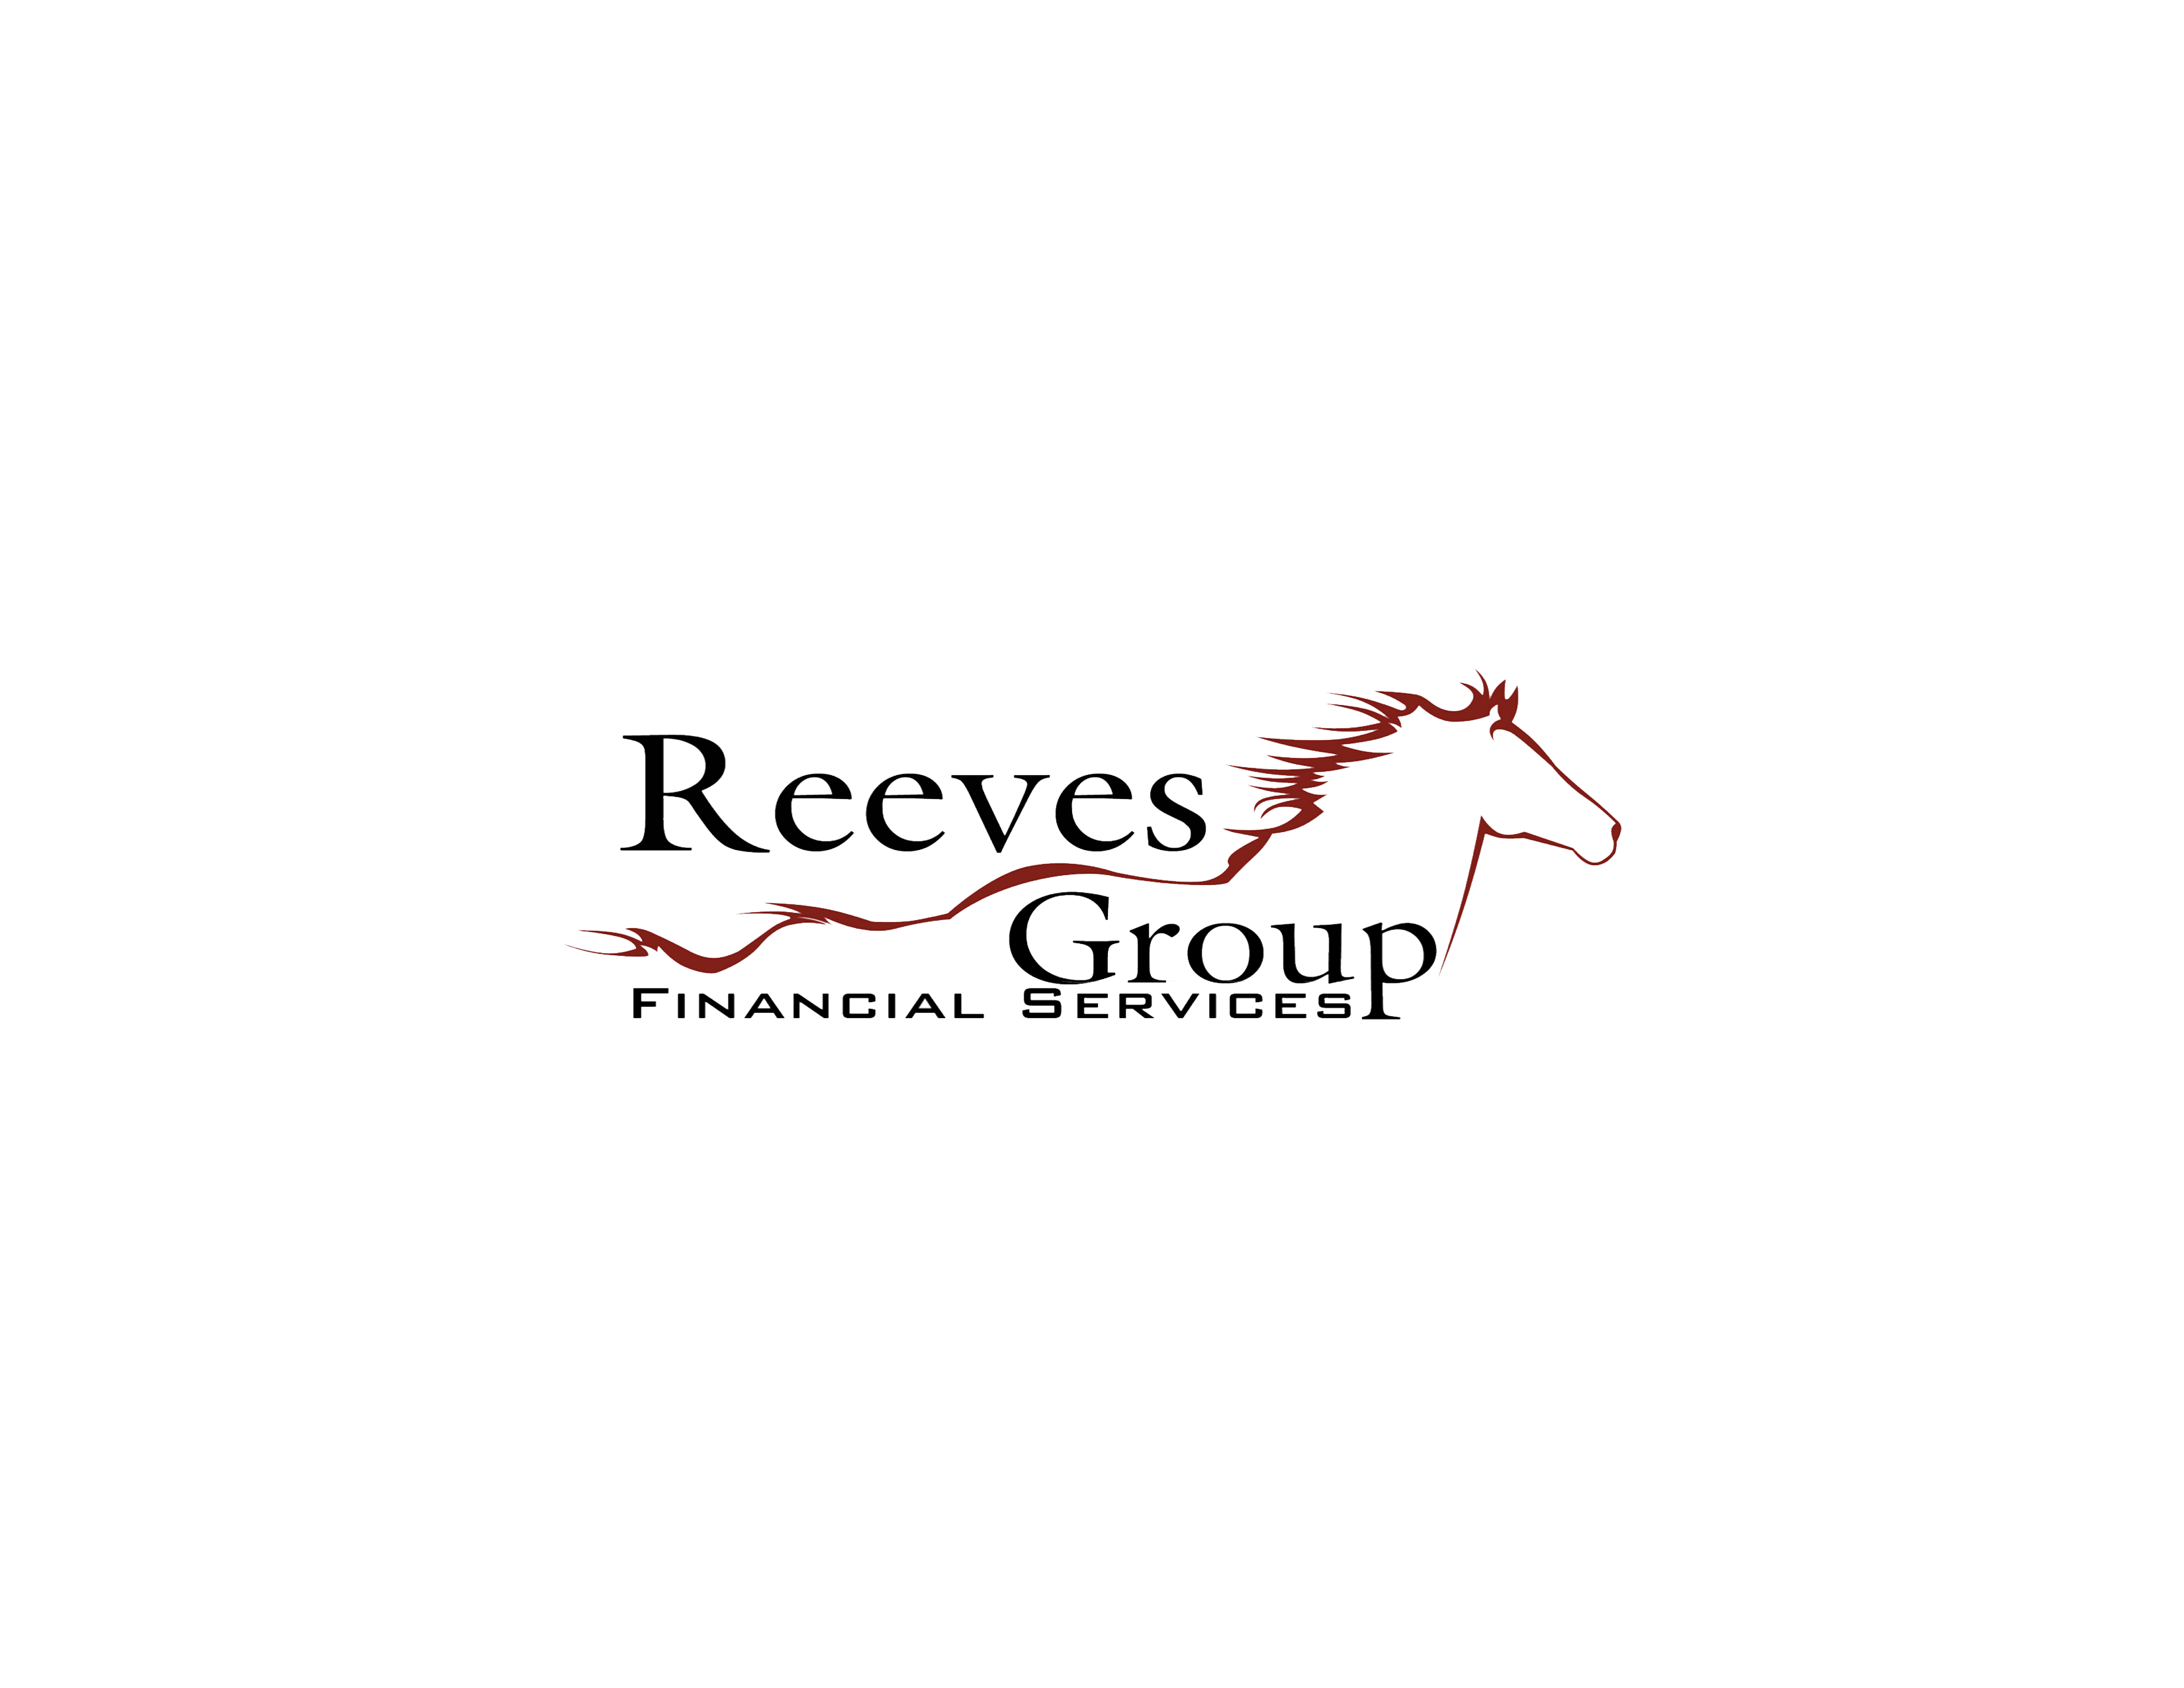 Reeves Group Financial Services